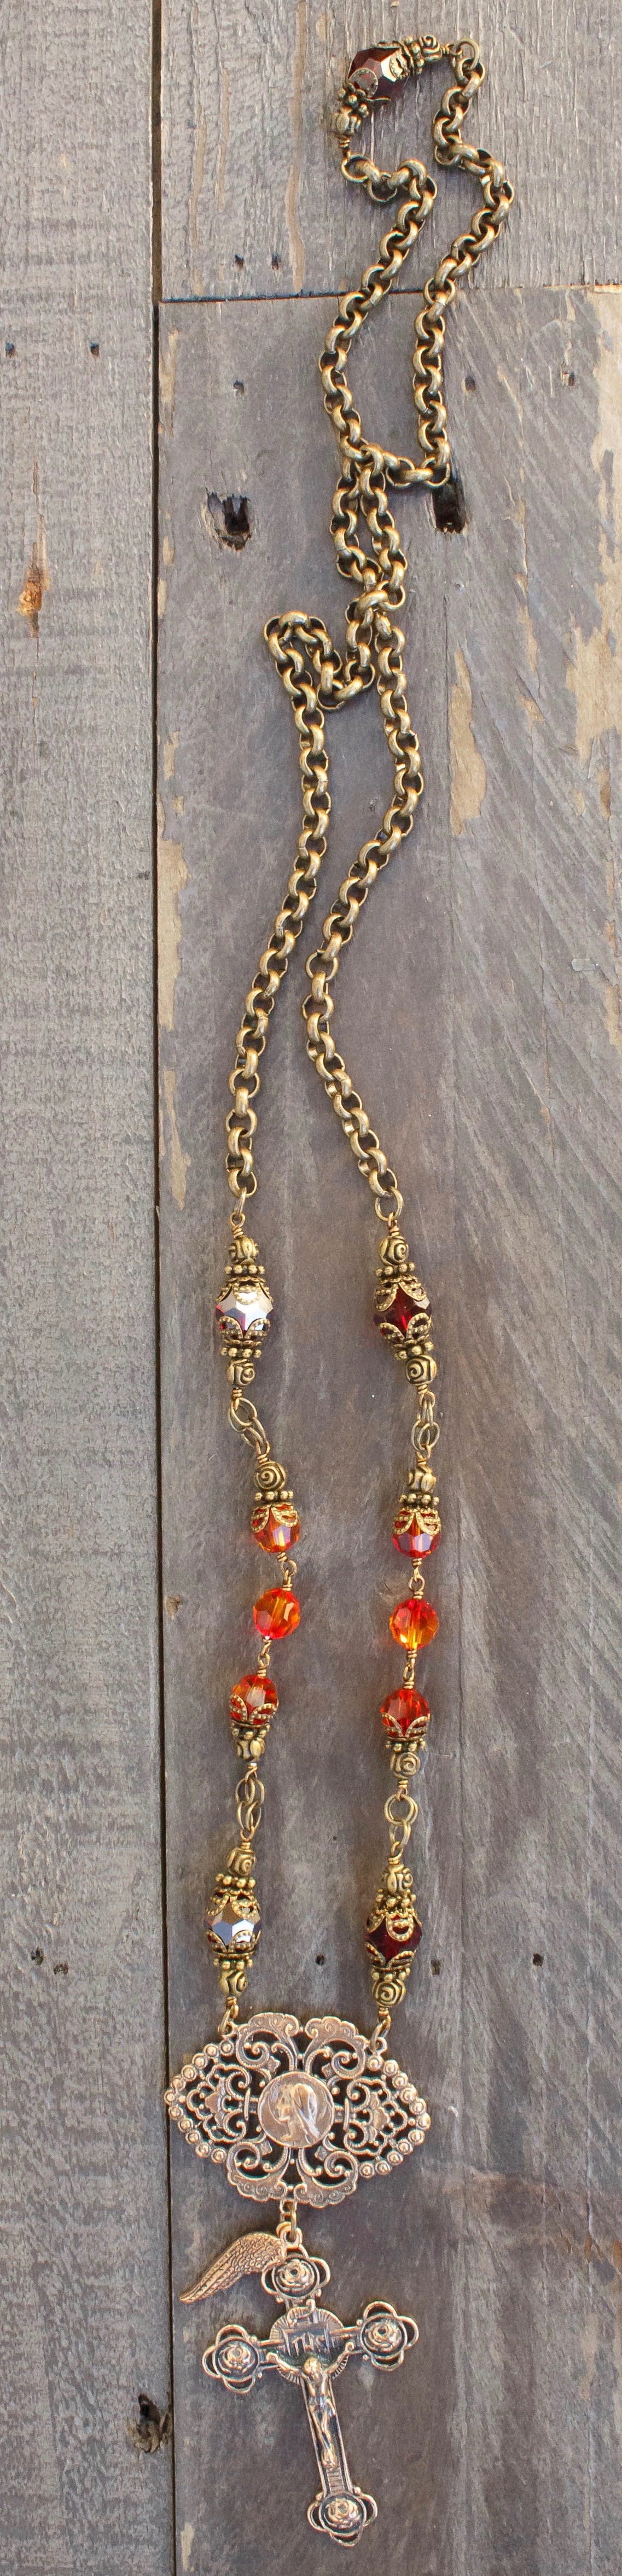 Chain with Red Fire Opal and Garnet Crystal Necklace – 8mm